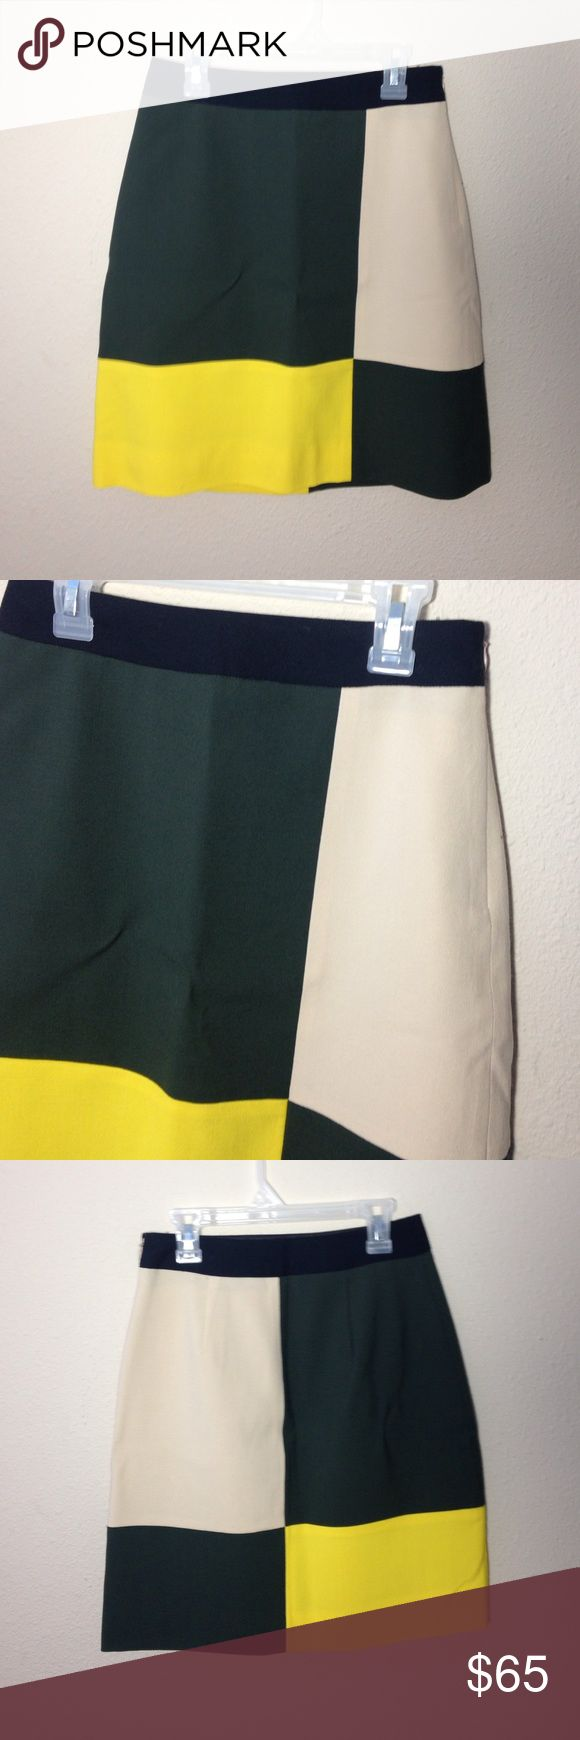 """Kate Spade ♠️ color block skirt Kate spade color block skirt, tan green and yellow with a black waistband. Mostly wool with some elastaine. Has a liner and a side zip. Approximately 19.5"""" in length kate spade Skirts"""